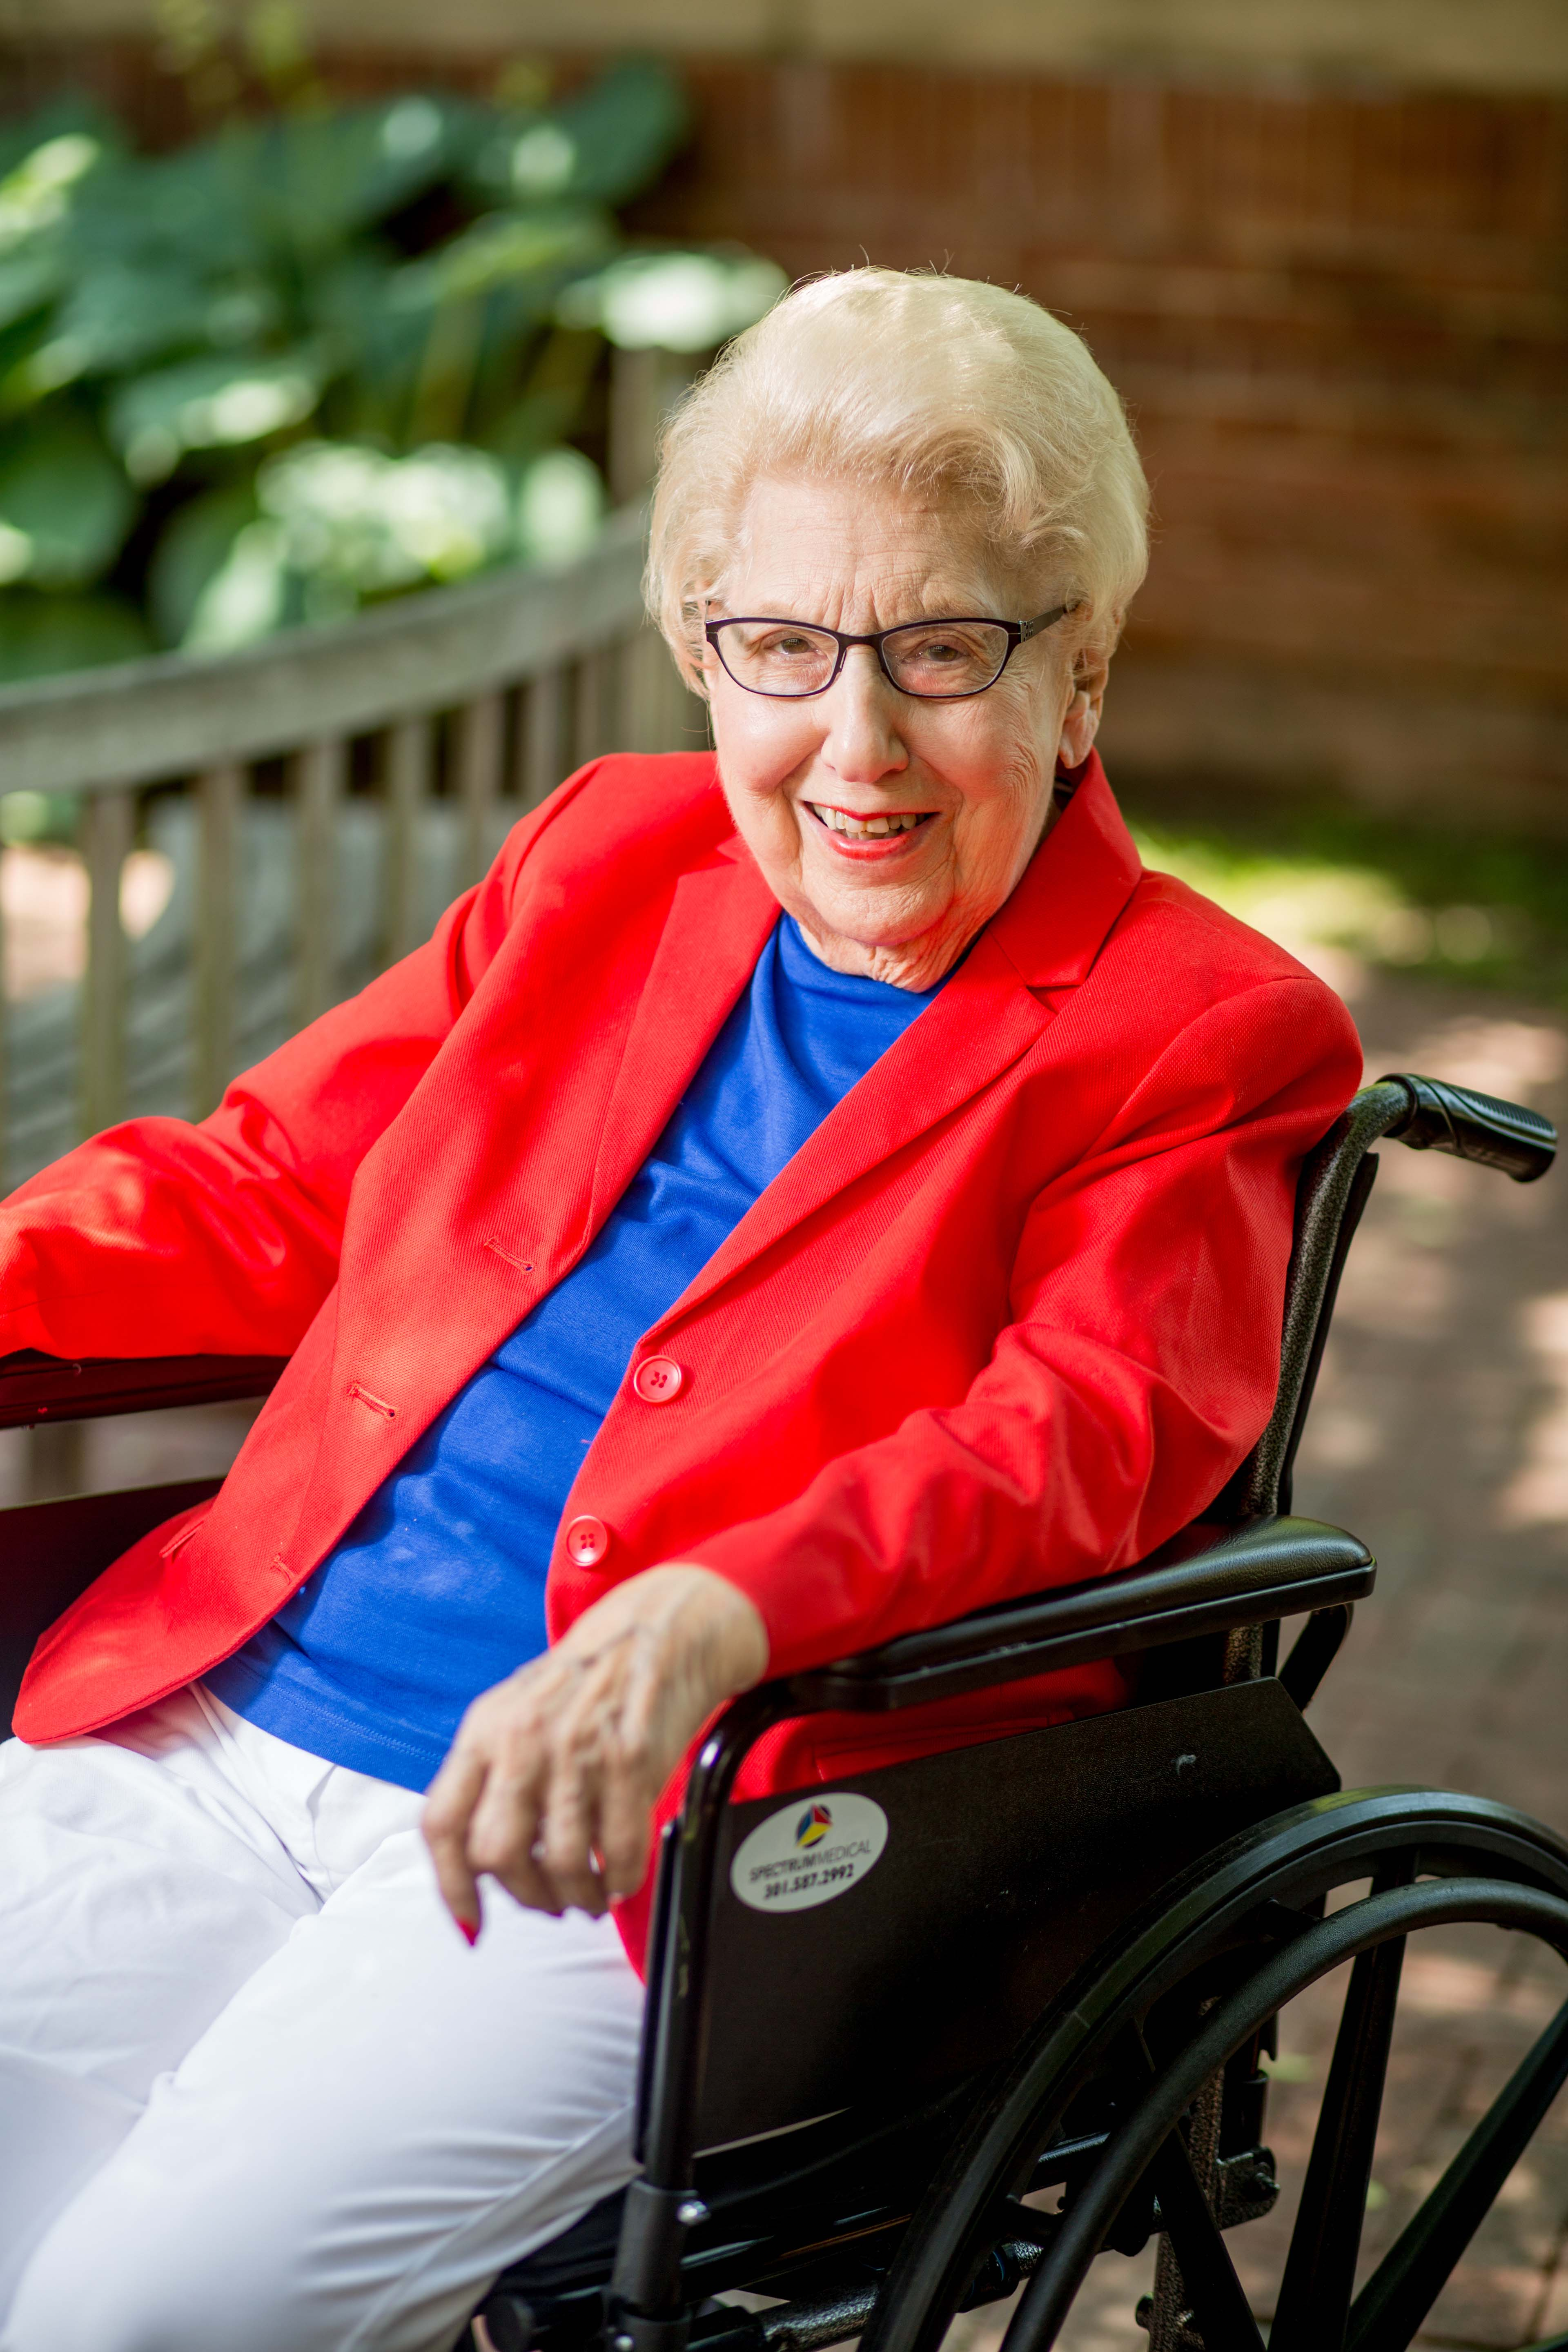 grand oaks assisted living resident